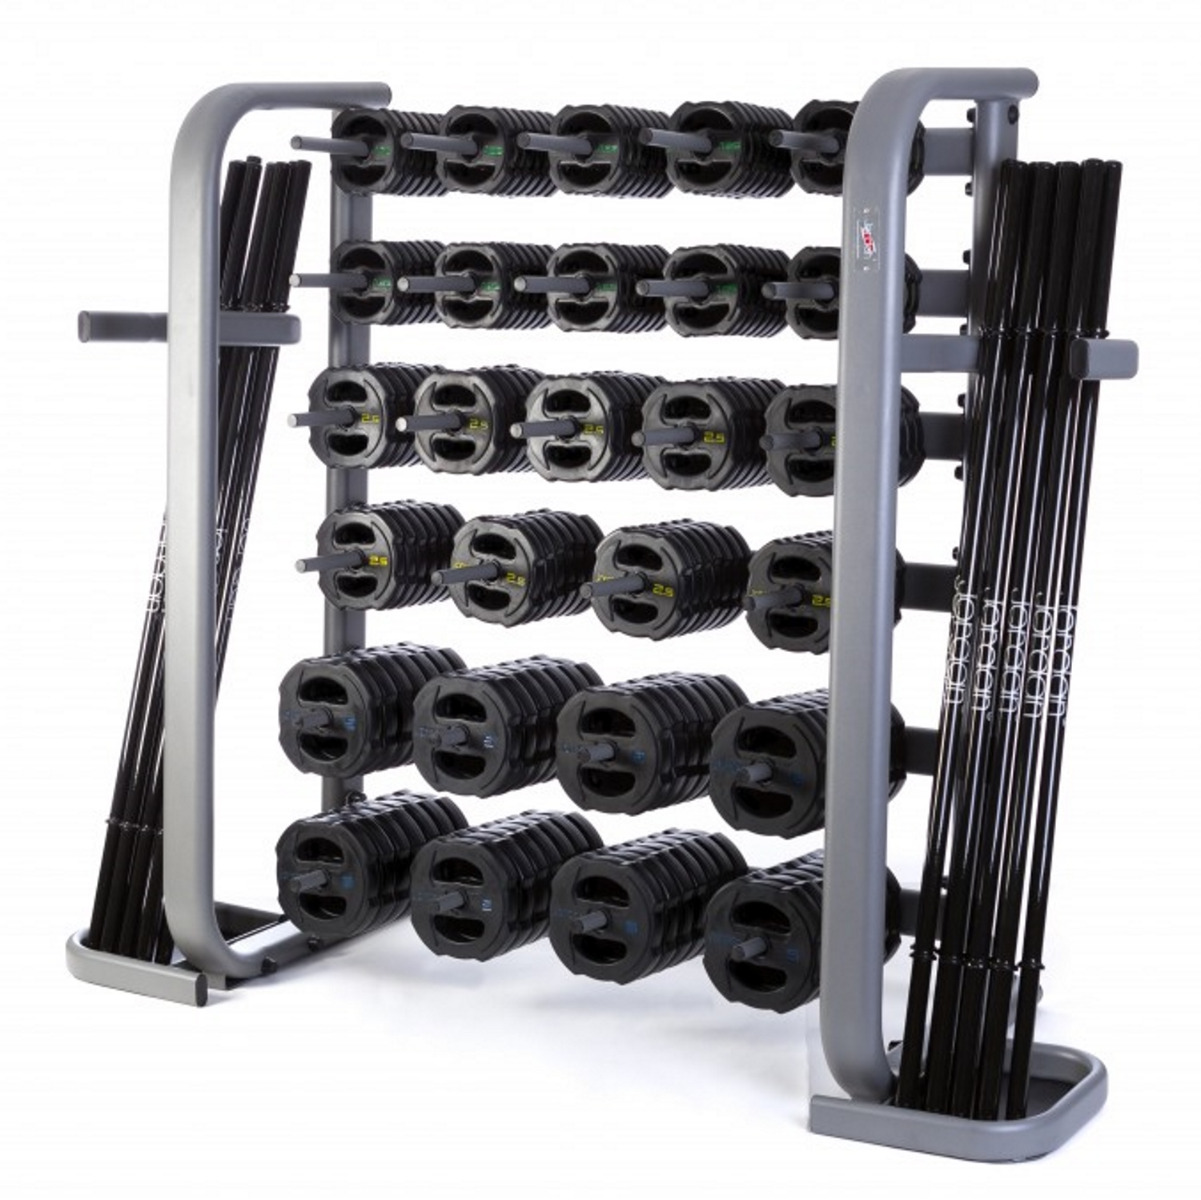 30 x Jordan Ignite V2 Rubber Studio Barbell Sets & Rack